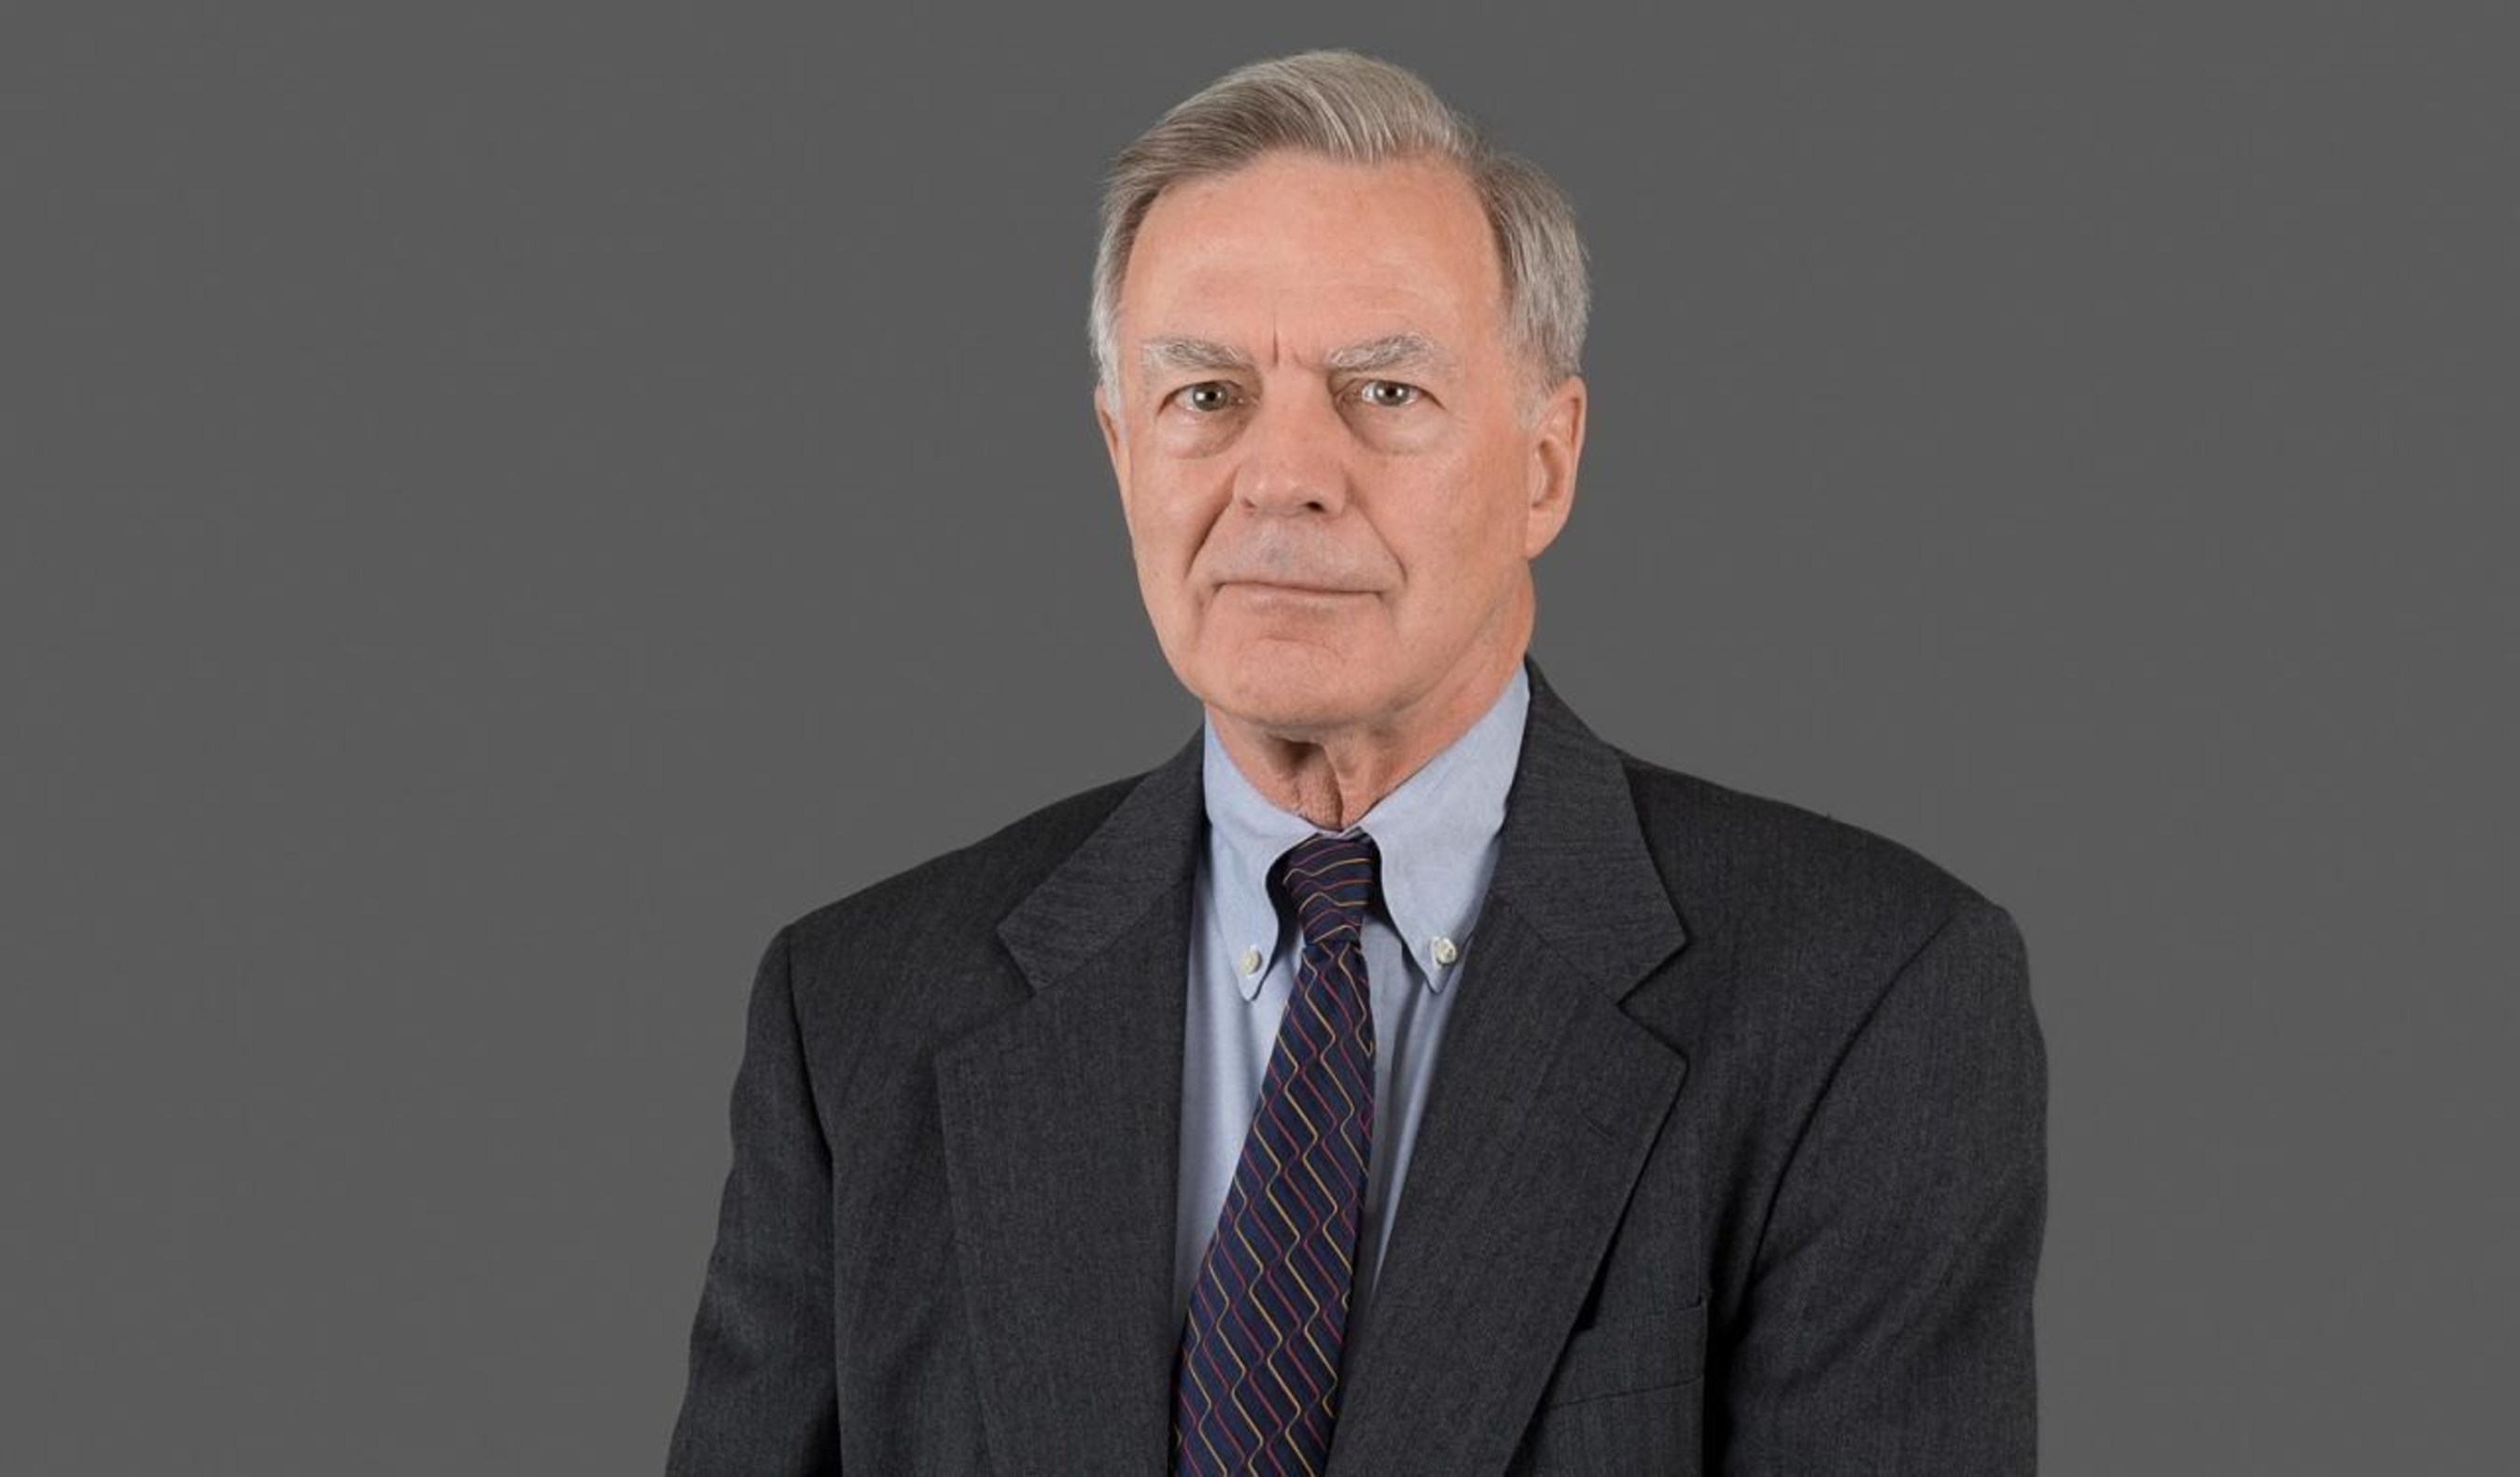 Dr. Donald M. Kerr Jr., vice chairman, The MITRE Corporation, is AFCEA International's 2016 Charlie Allen Award for Distinguished Intelligence Service.